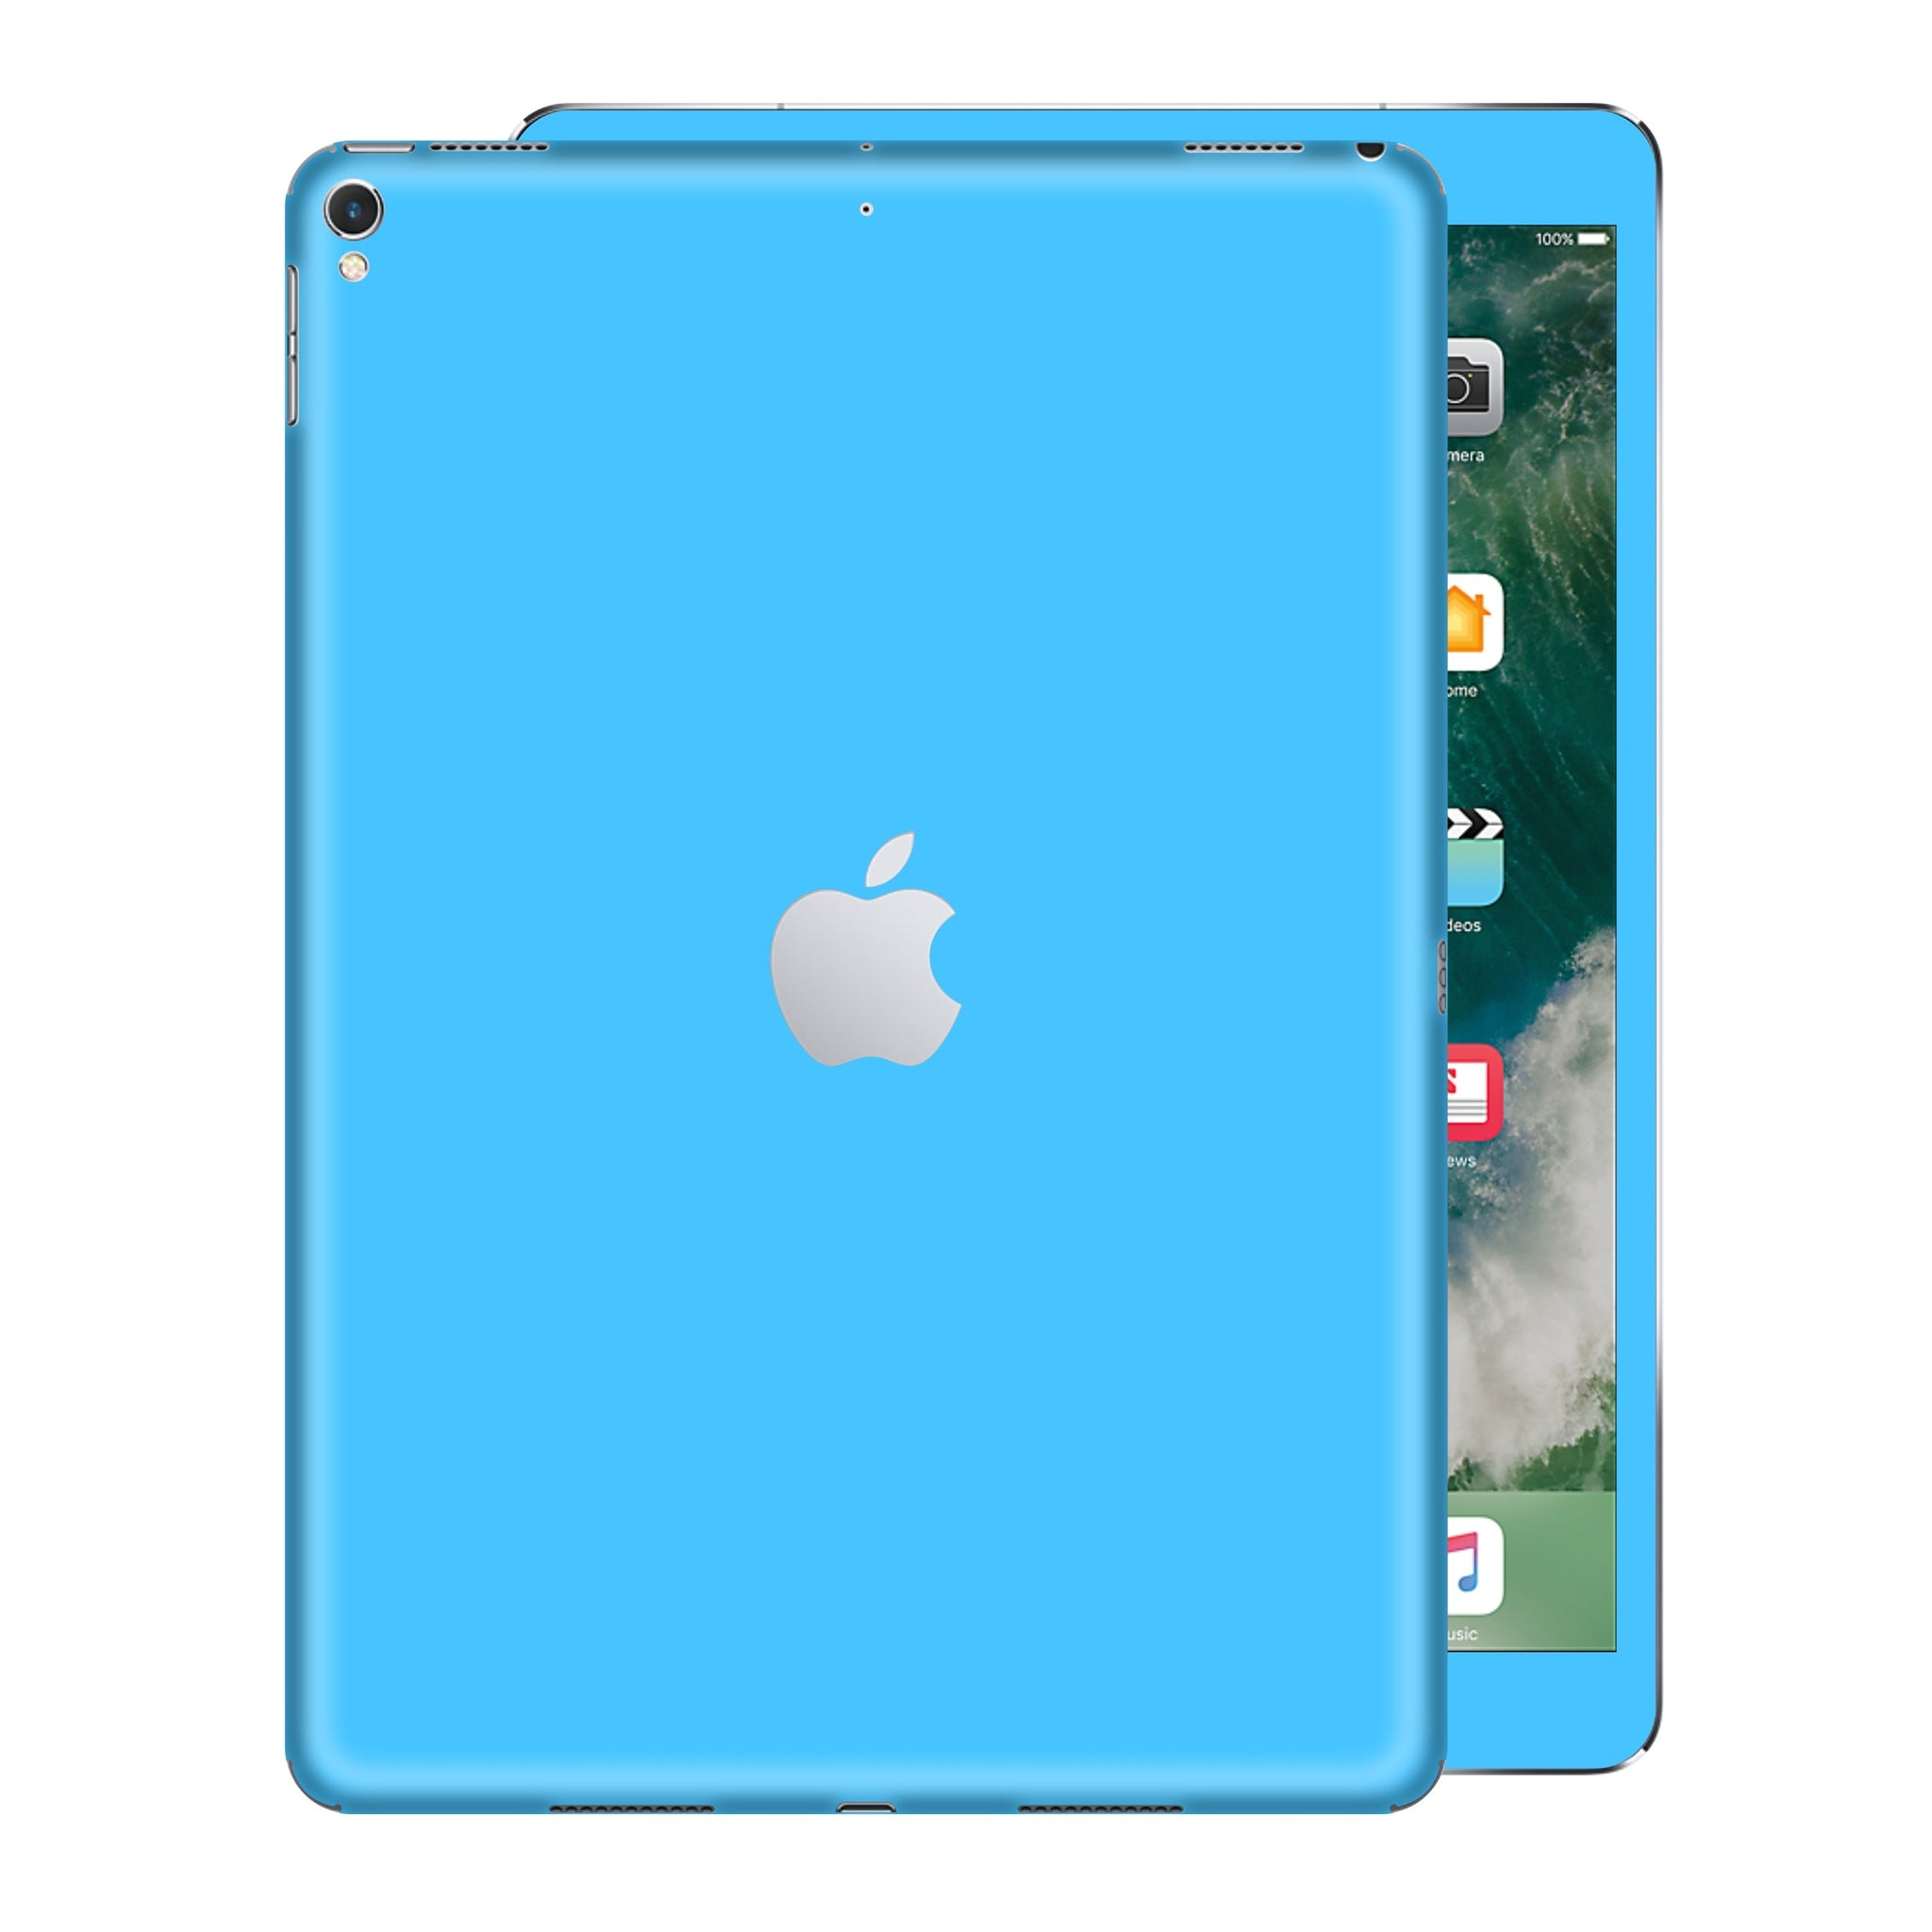 iPad PRO 10.5 inch 2017 Matt Matte Blue Skin Wrap Sticker Decal Cover Protector by EasySkinz